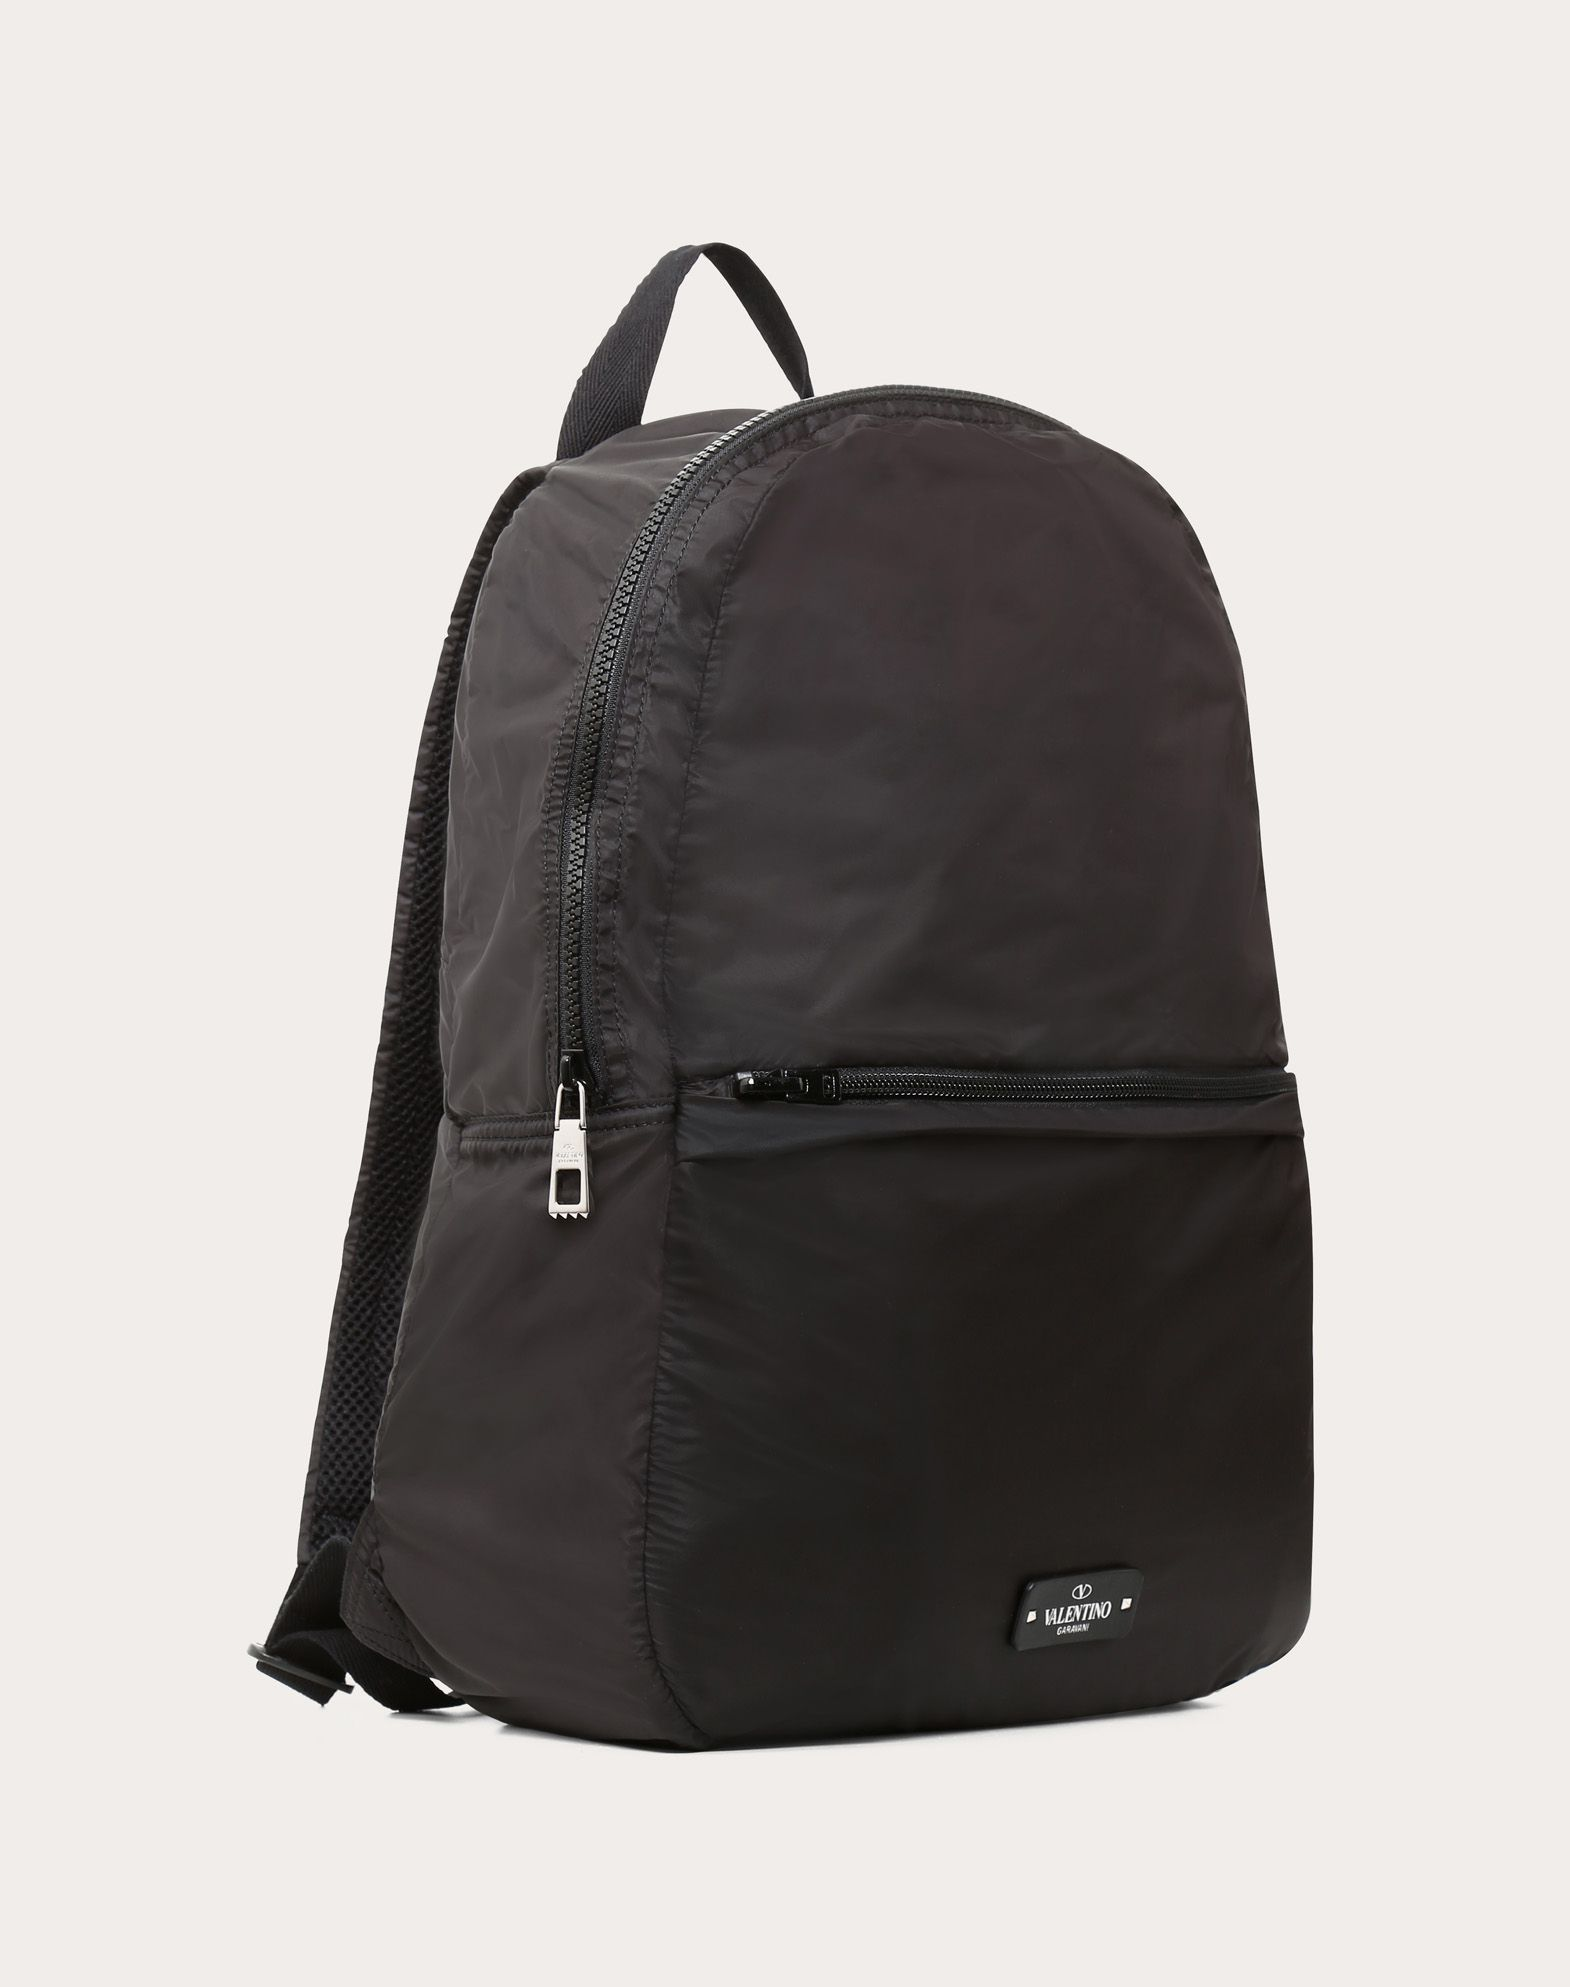 VALENTINO GARAVANI UOMO VLTN backpack Backpack U r